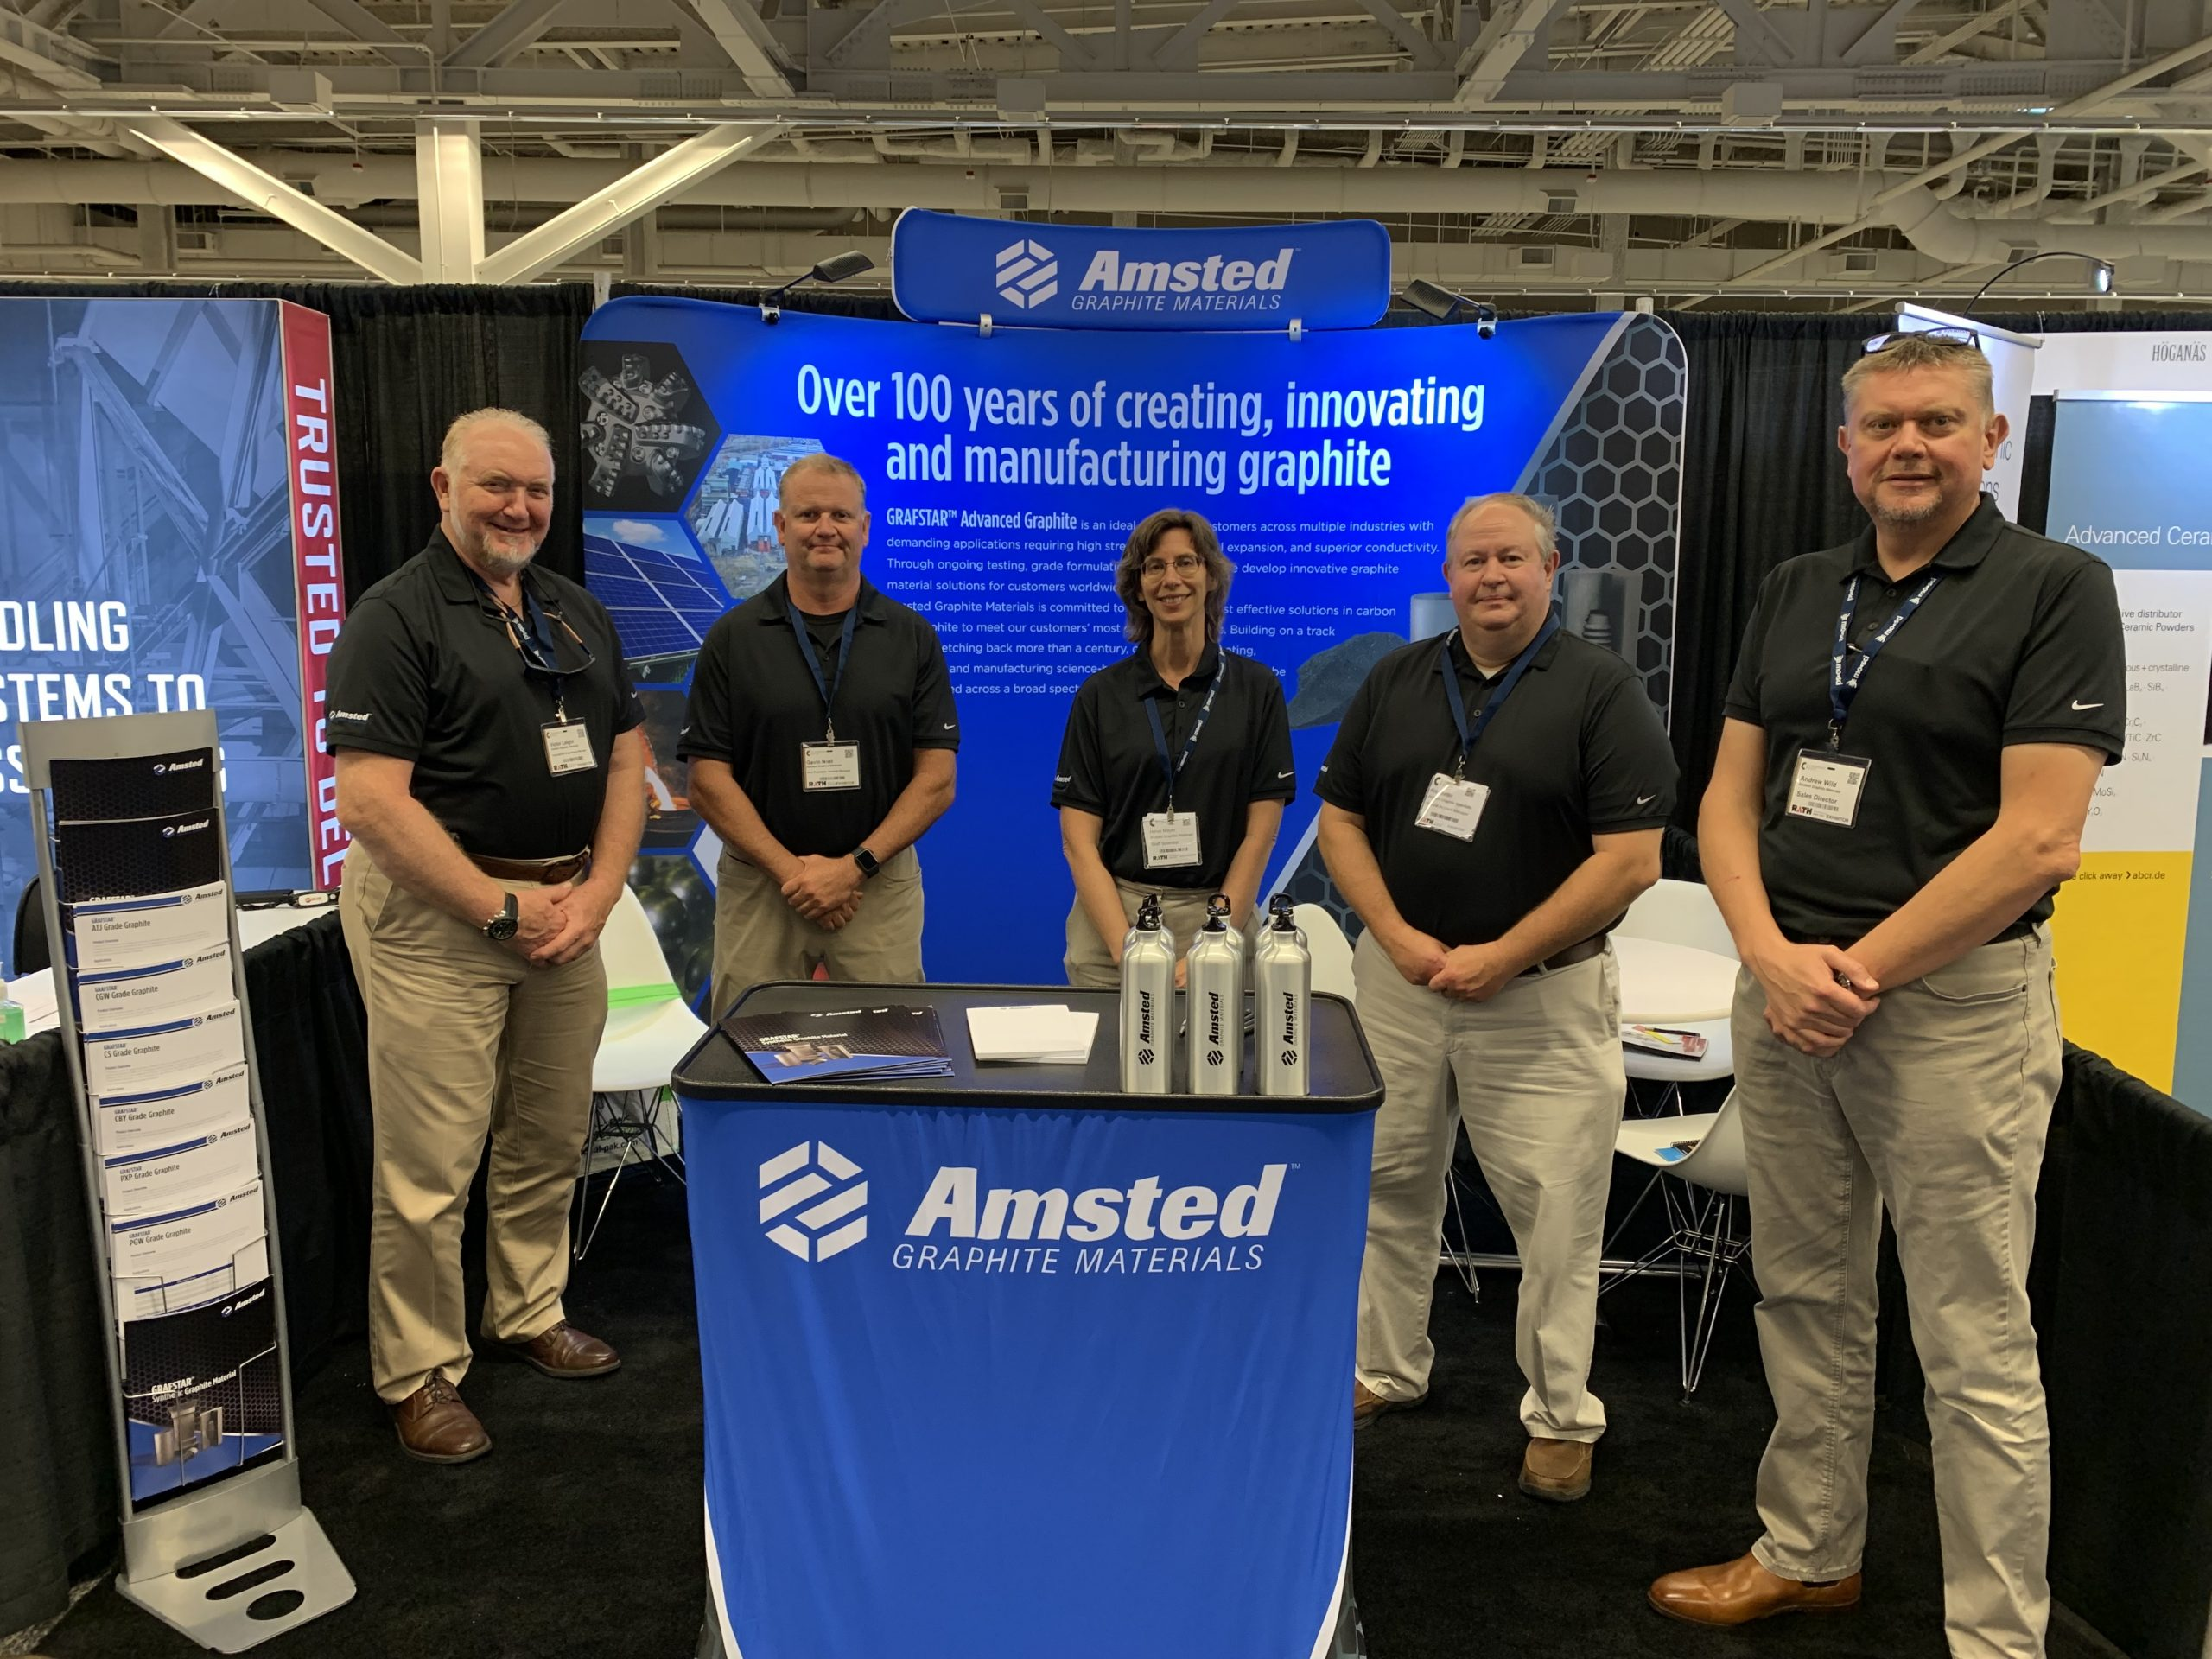 The Amsted Graphite Materials team poses at their booth at Ceramics Expo